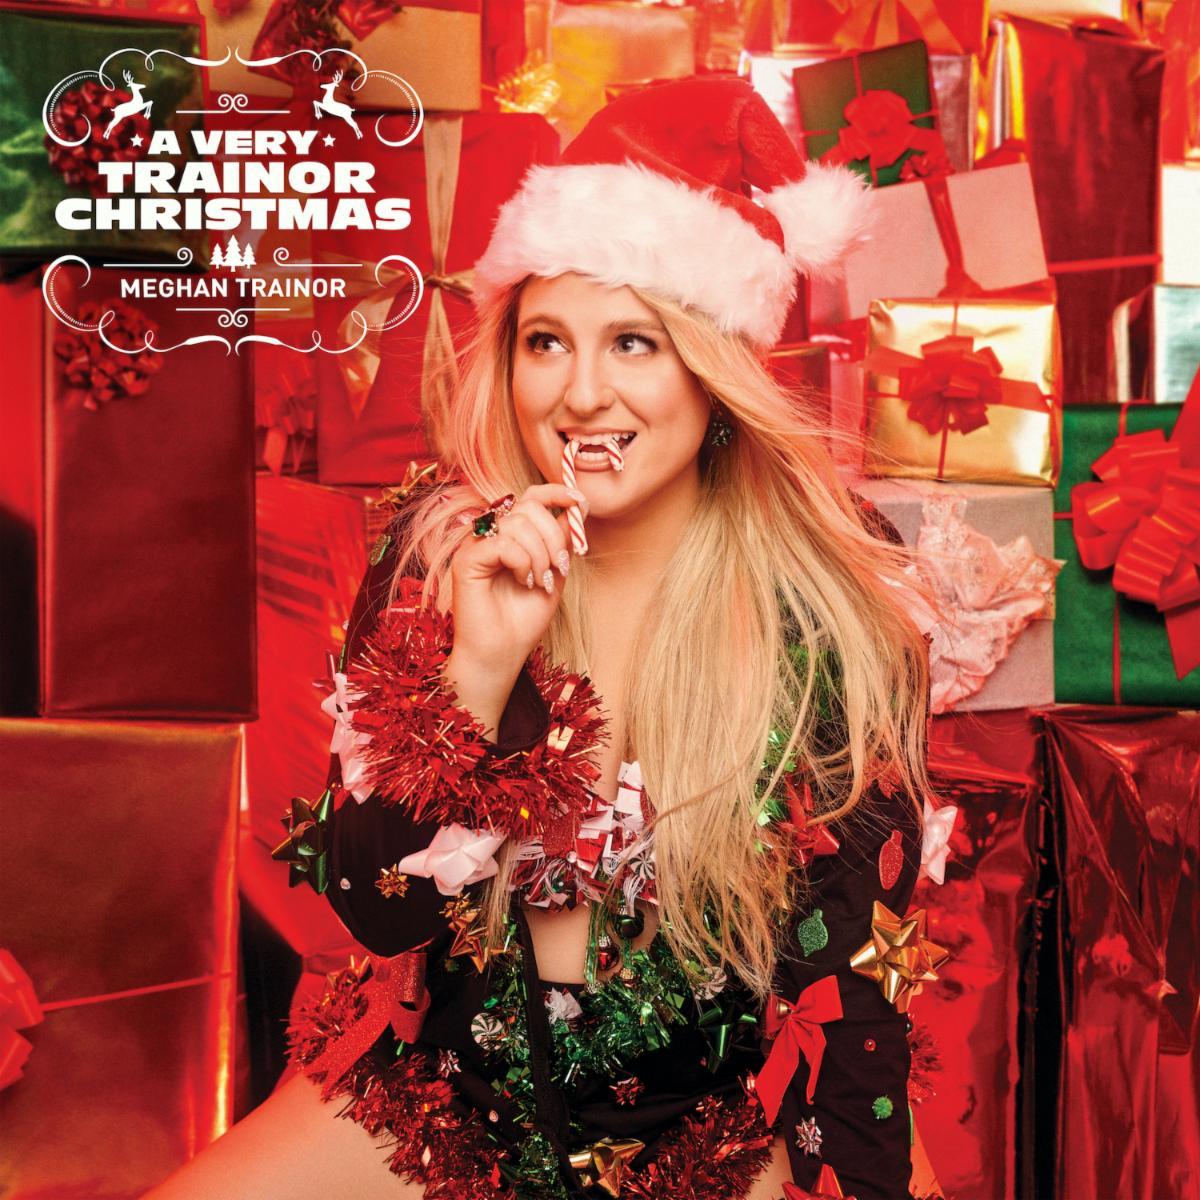 Meghan Christmas 2020 Meghan Trainor To Release 'A Very Trainor Christmas' On October